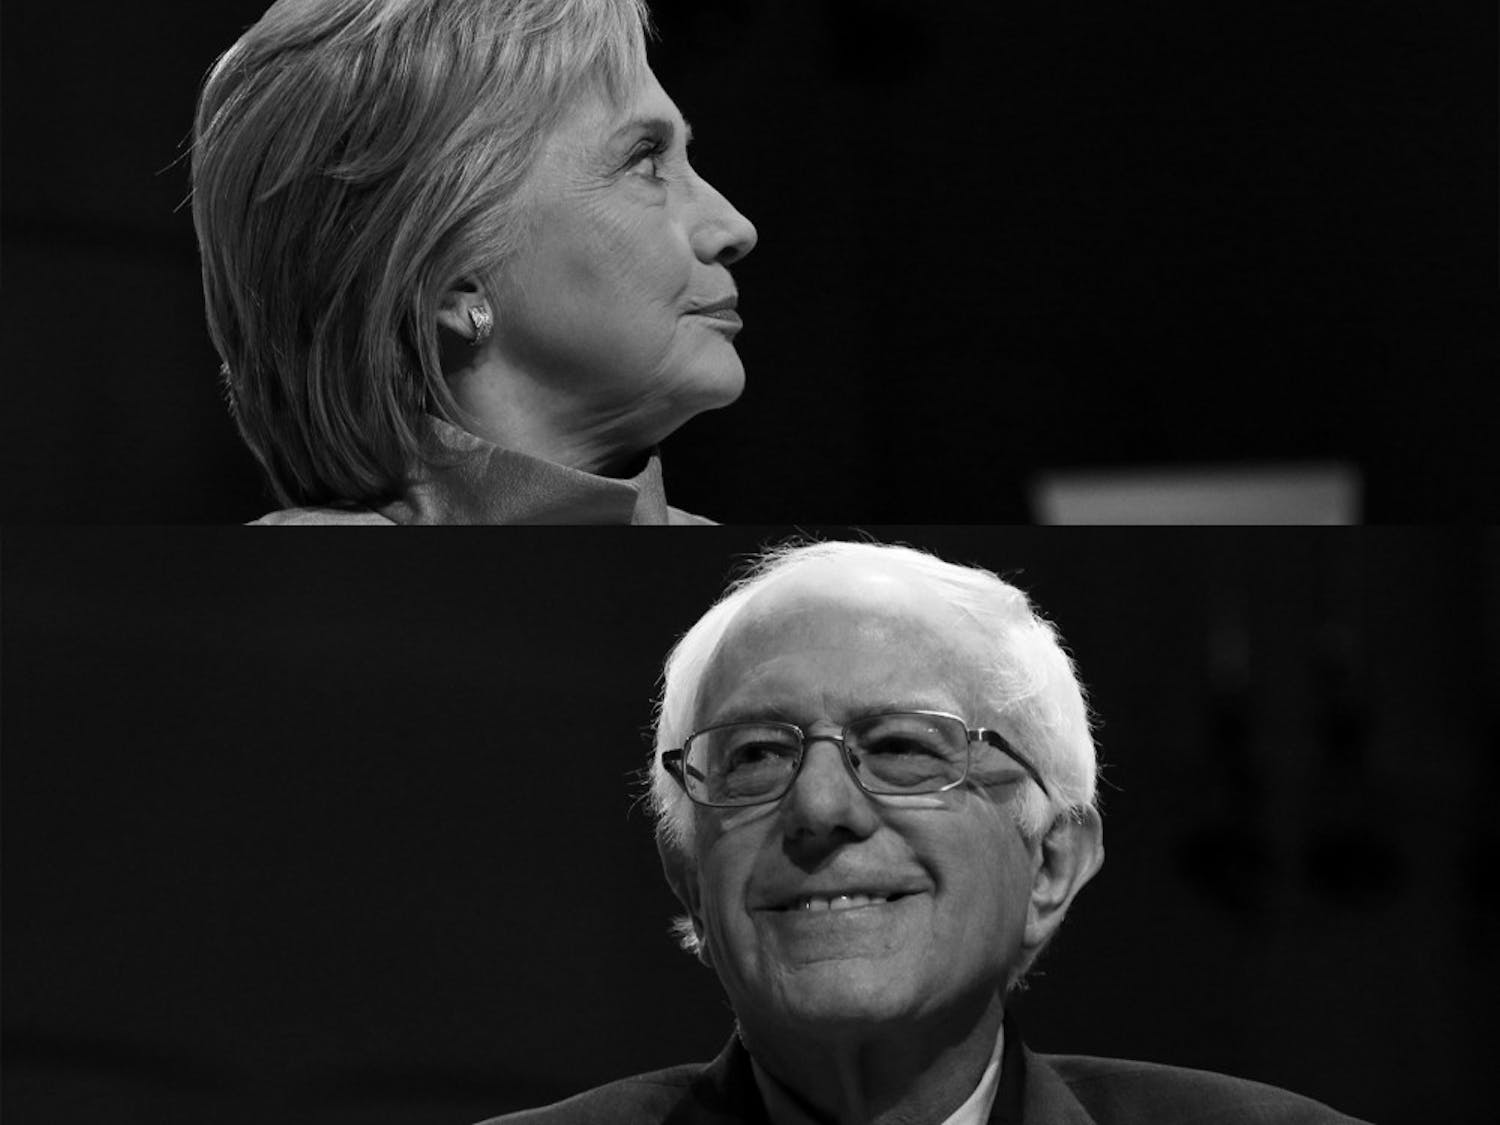 Sen. Bernie Sanders' idealism and former Secretary of State Hillary Clinton's moderated liberalism were key focuses at the sixth Democratic debate Thursday.